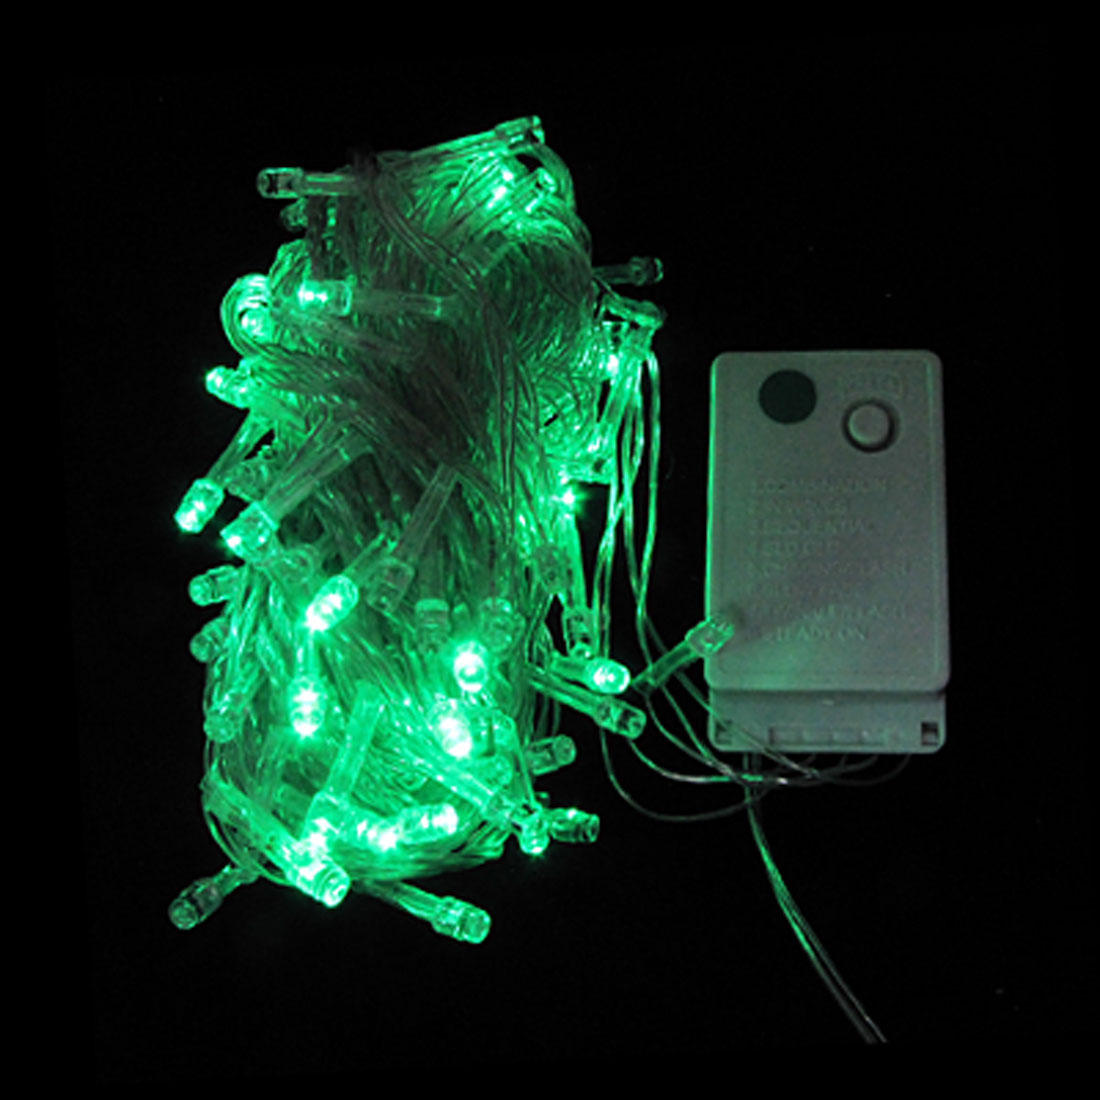 Wedding Xmas 100 Green LEDs String Light Lamp Decor 10M AC 110V US Plug